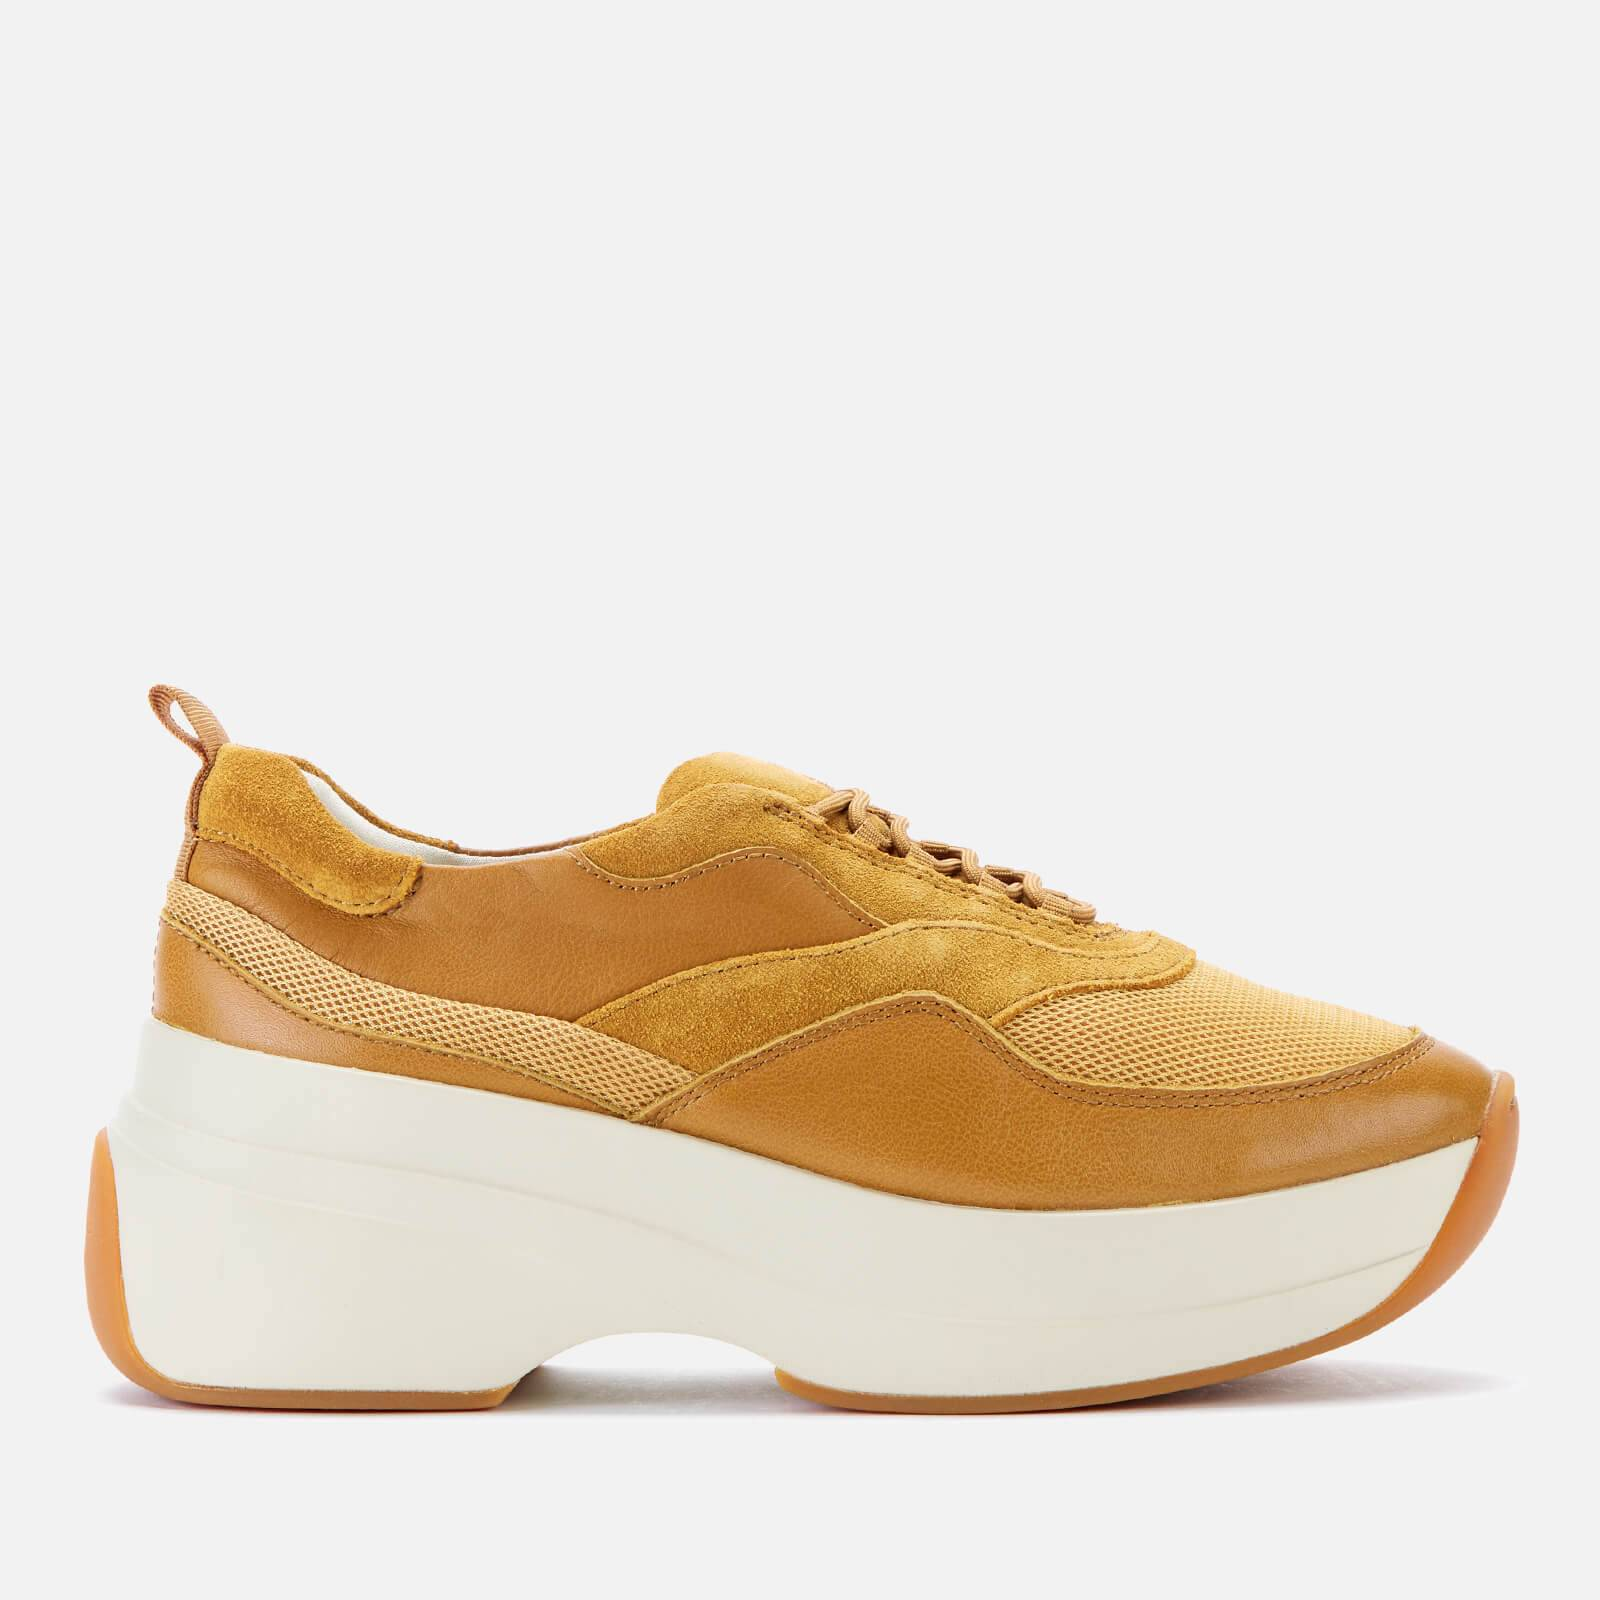 Vagabond Women's Sprint 2.0 Chunky Trainers - Golden Oat - UK 3 - Yellow